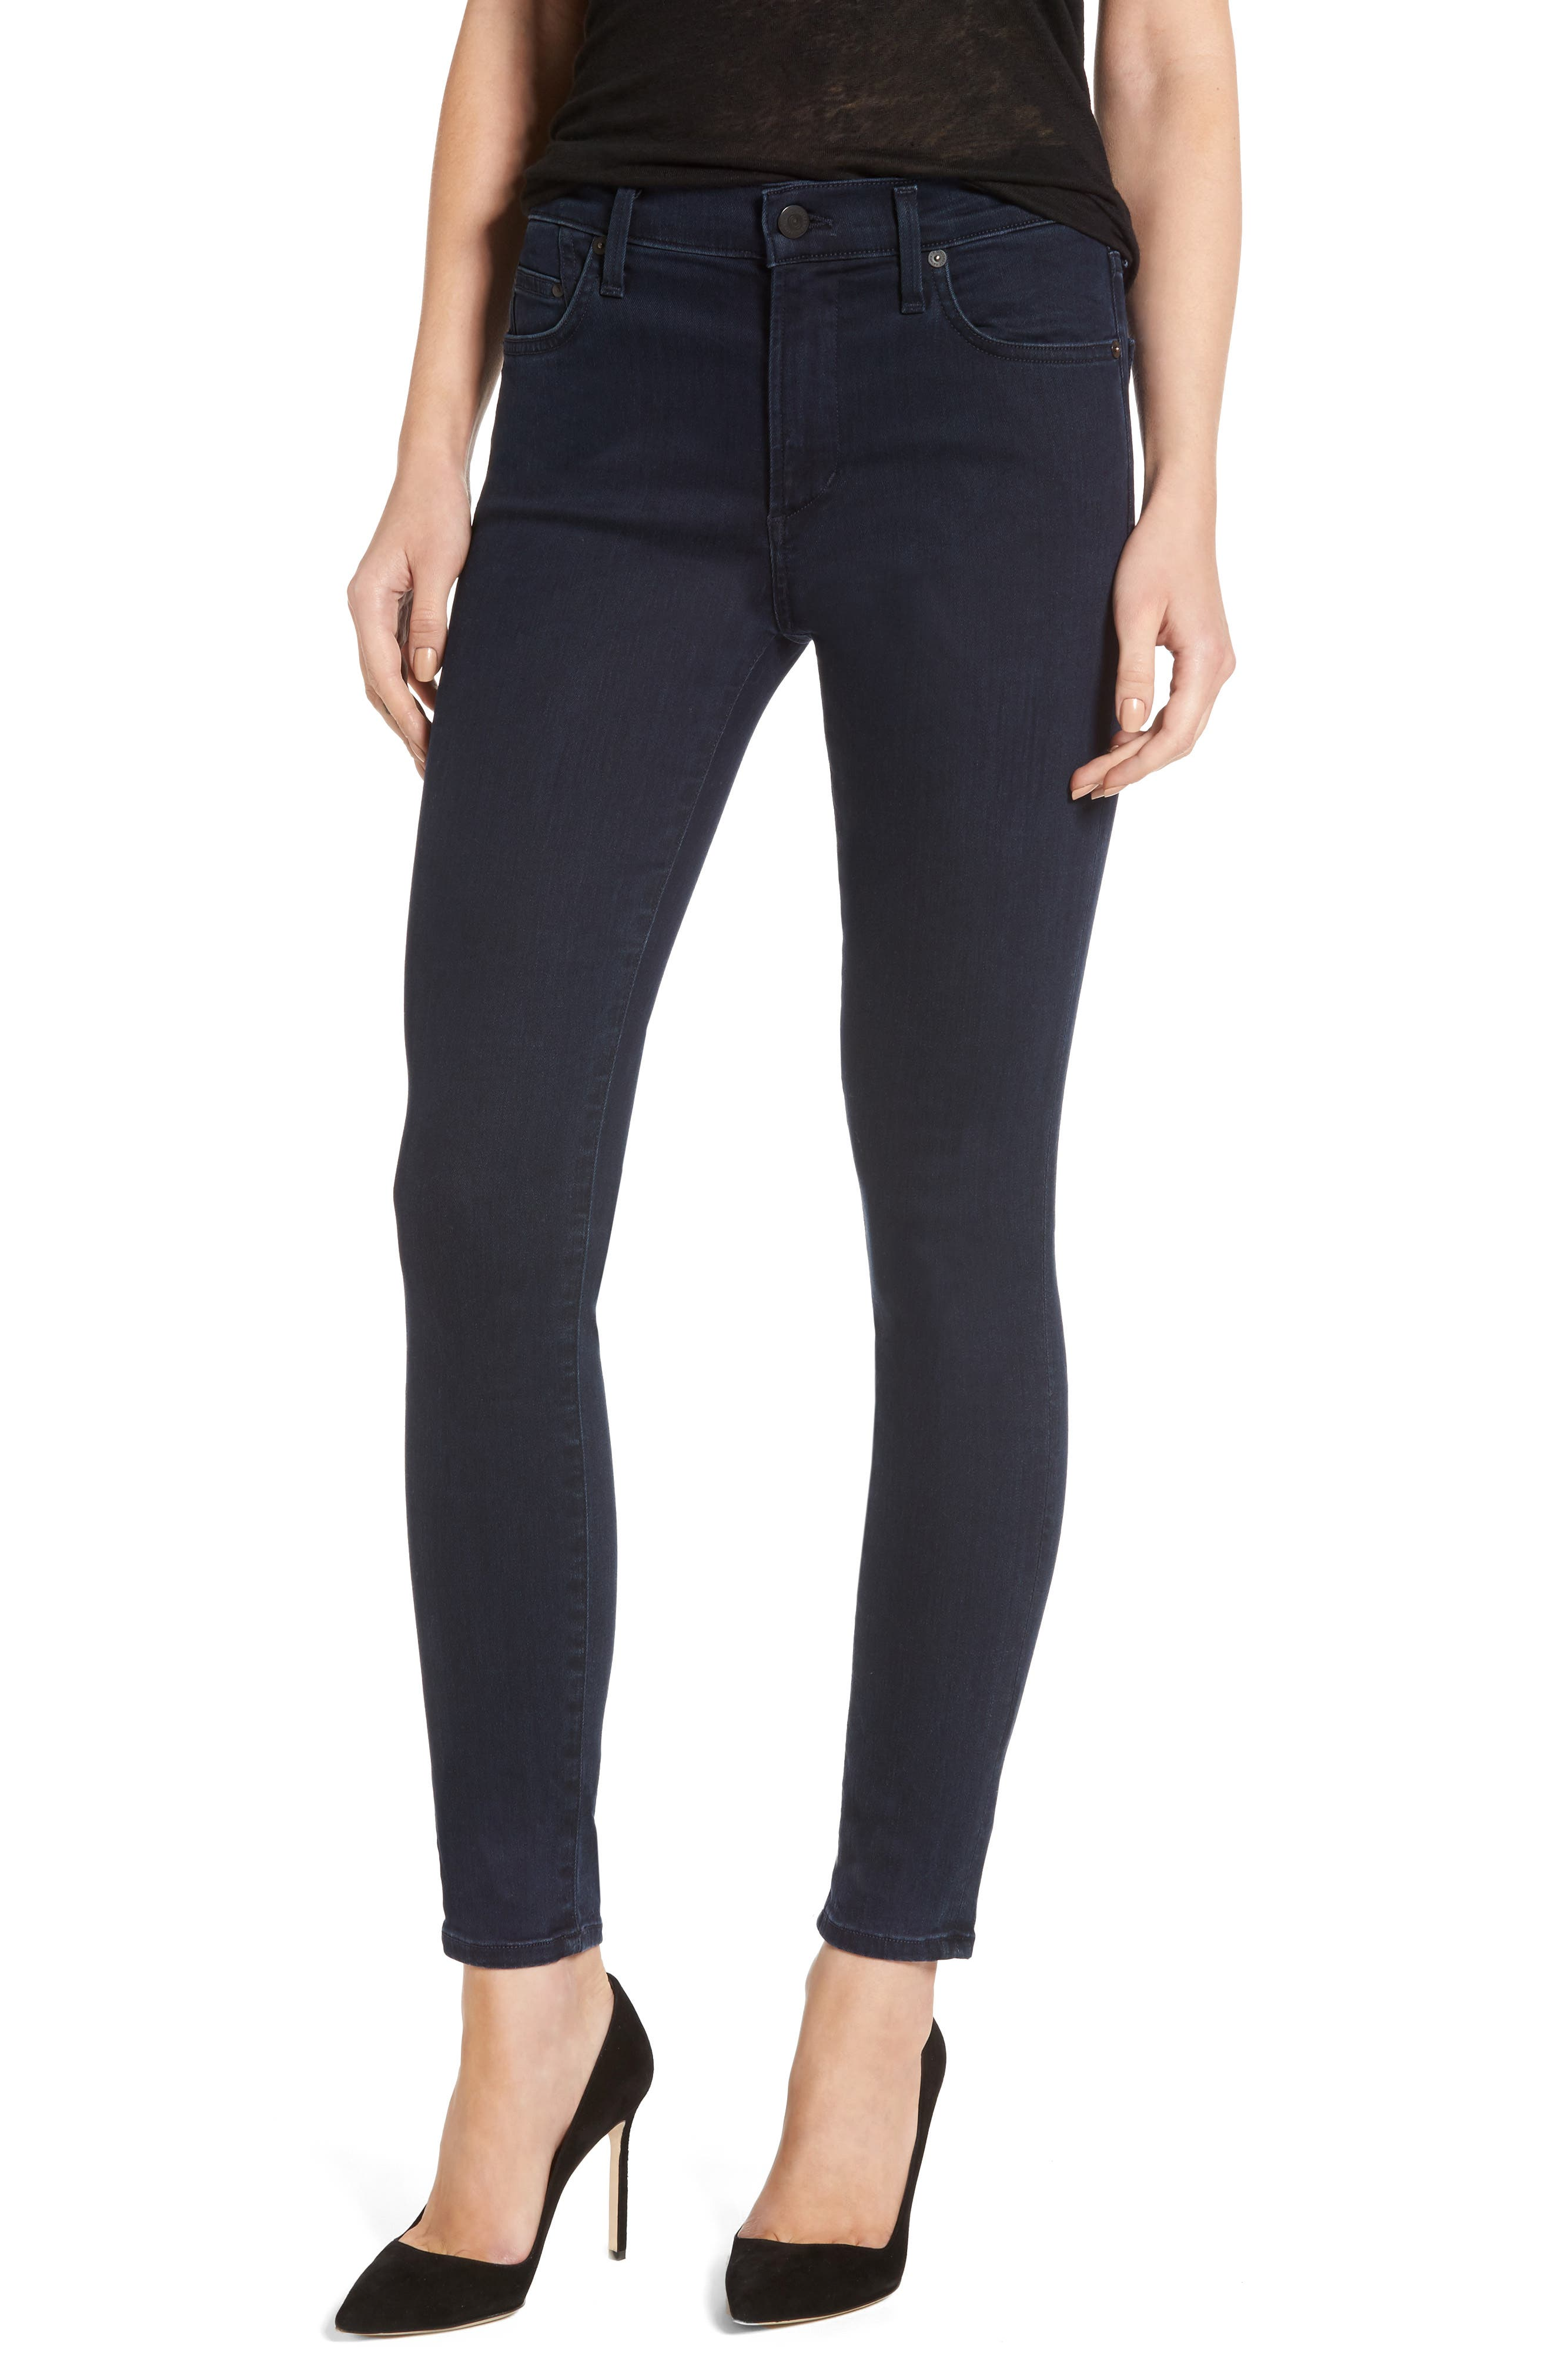 Alternate Image 1 Selected - Citizens of Humanity Rocket High Waist Skinny Jeans (Ozone Ink) (Petite)